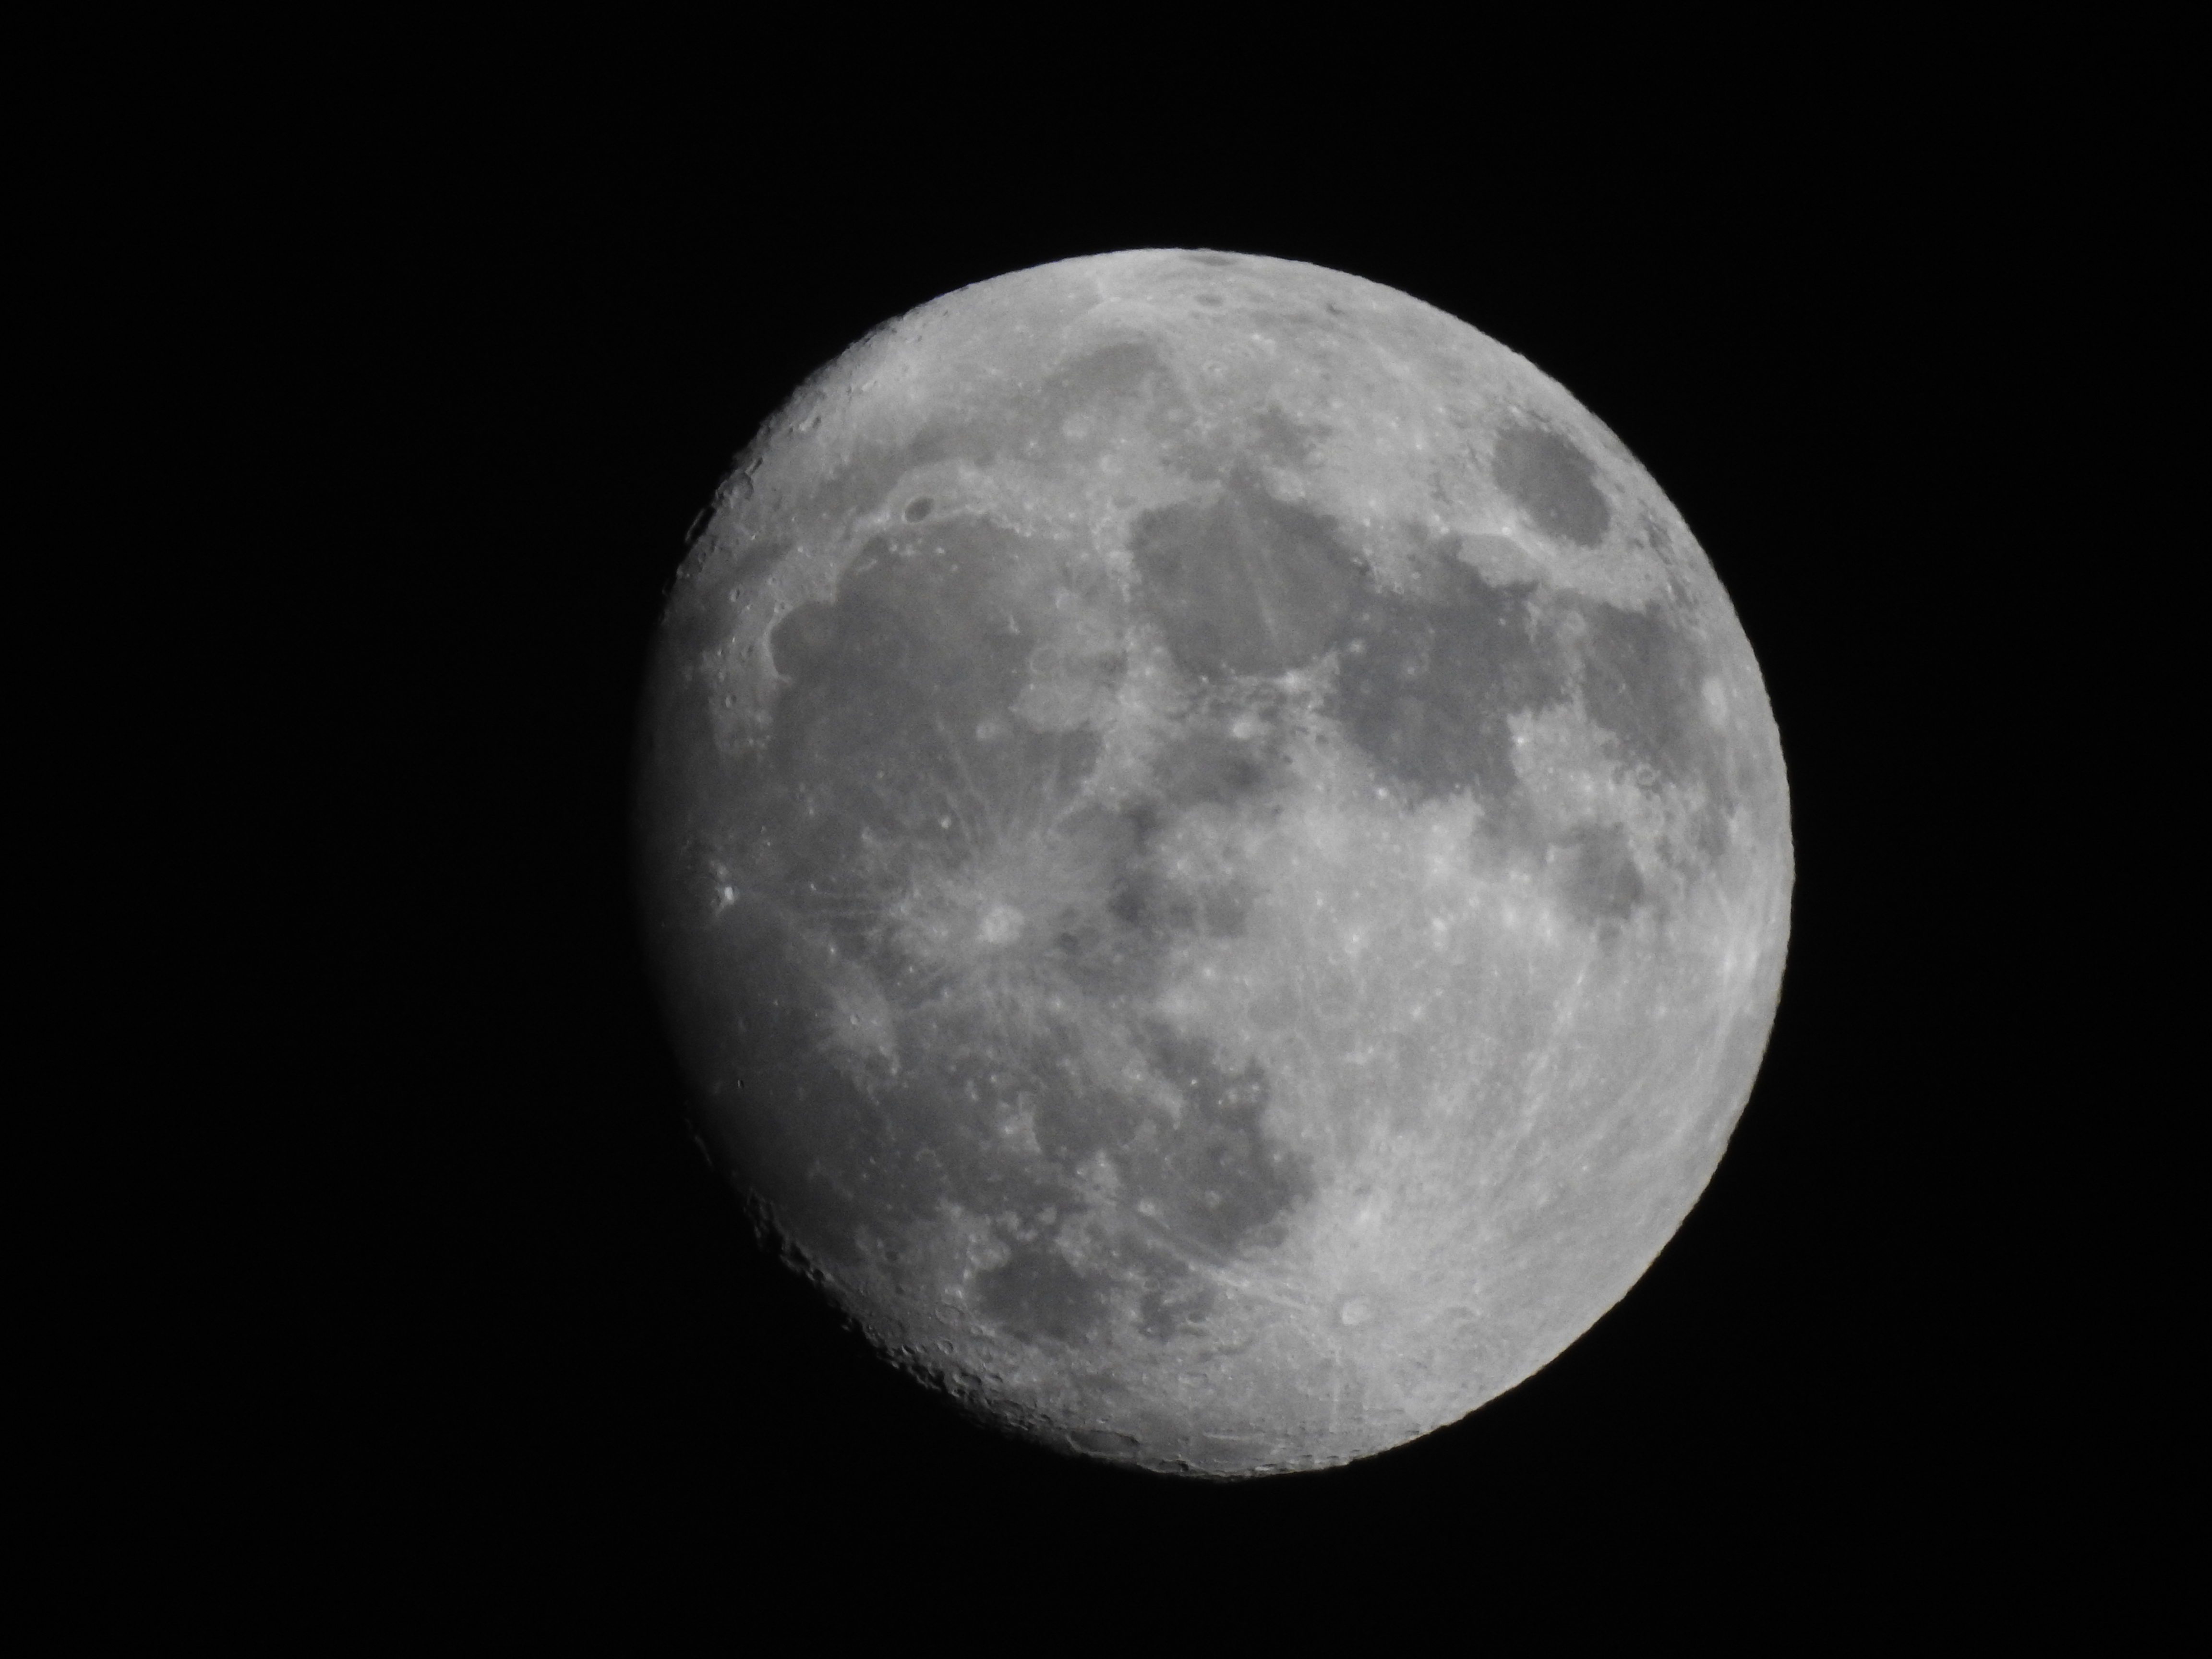 There are two supermoons in January 2018 (7 photos